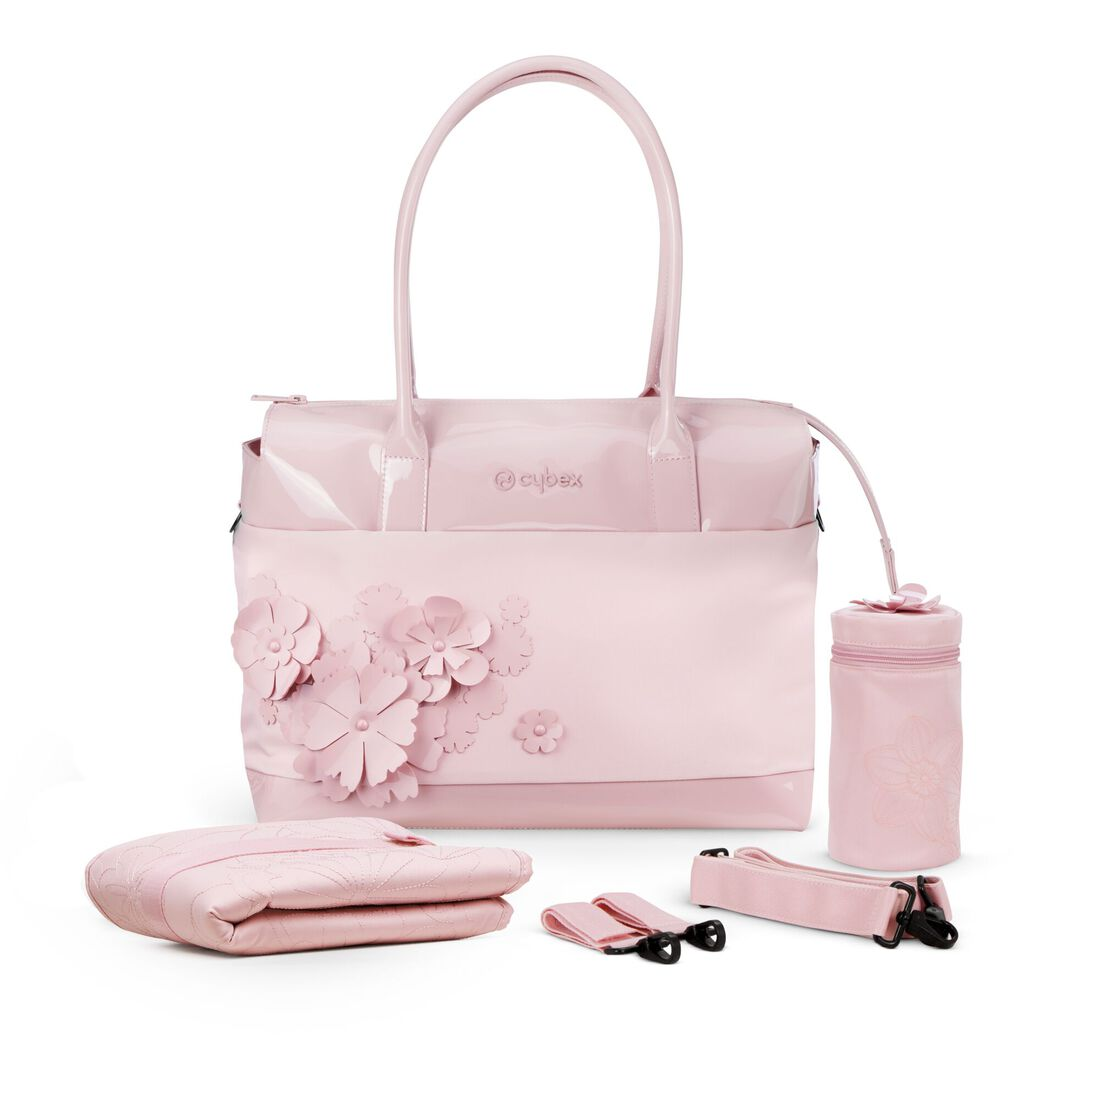 CYBEX Changing Bag Simply Flowers - Pale Blush in Pale Blush large image number 3